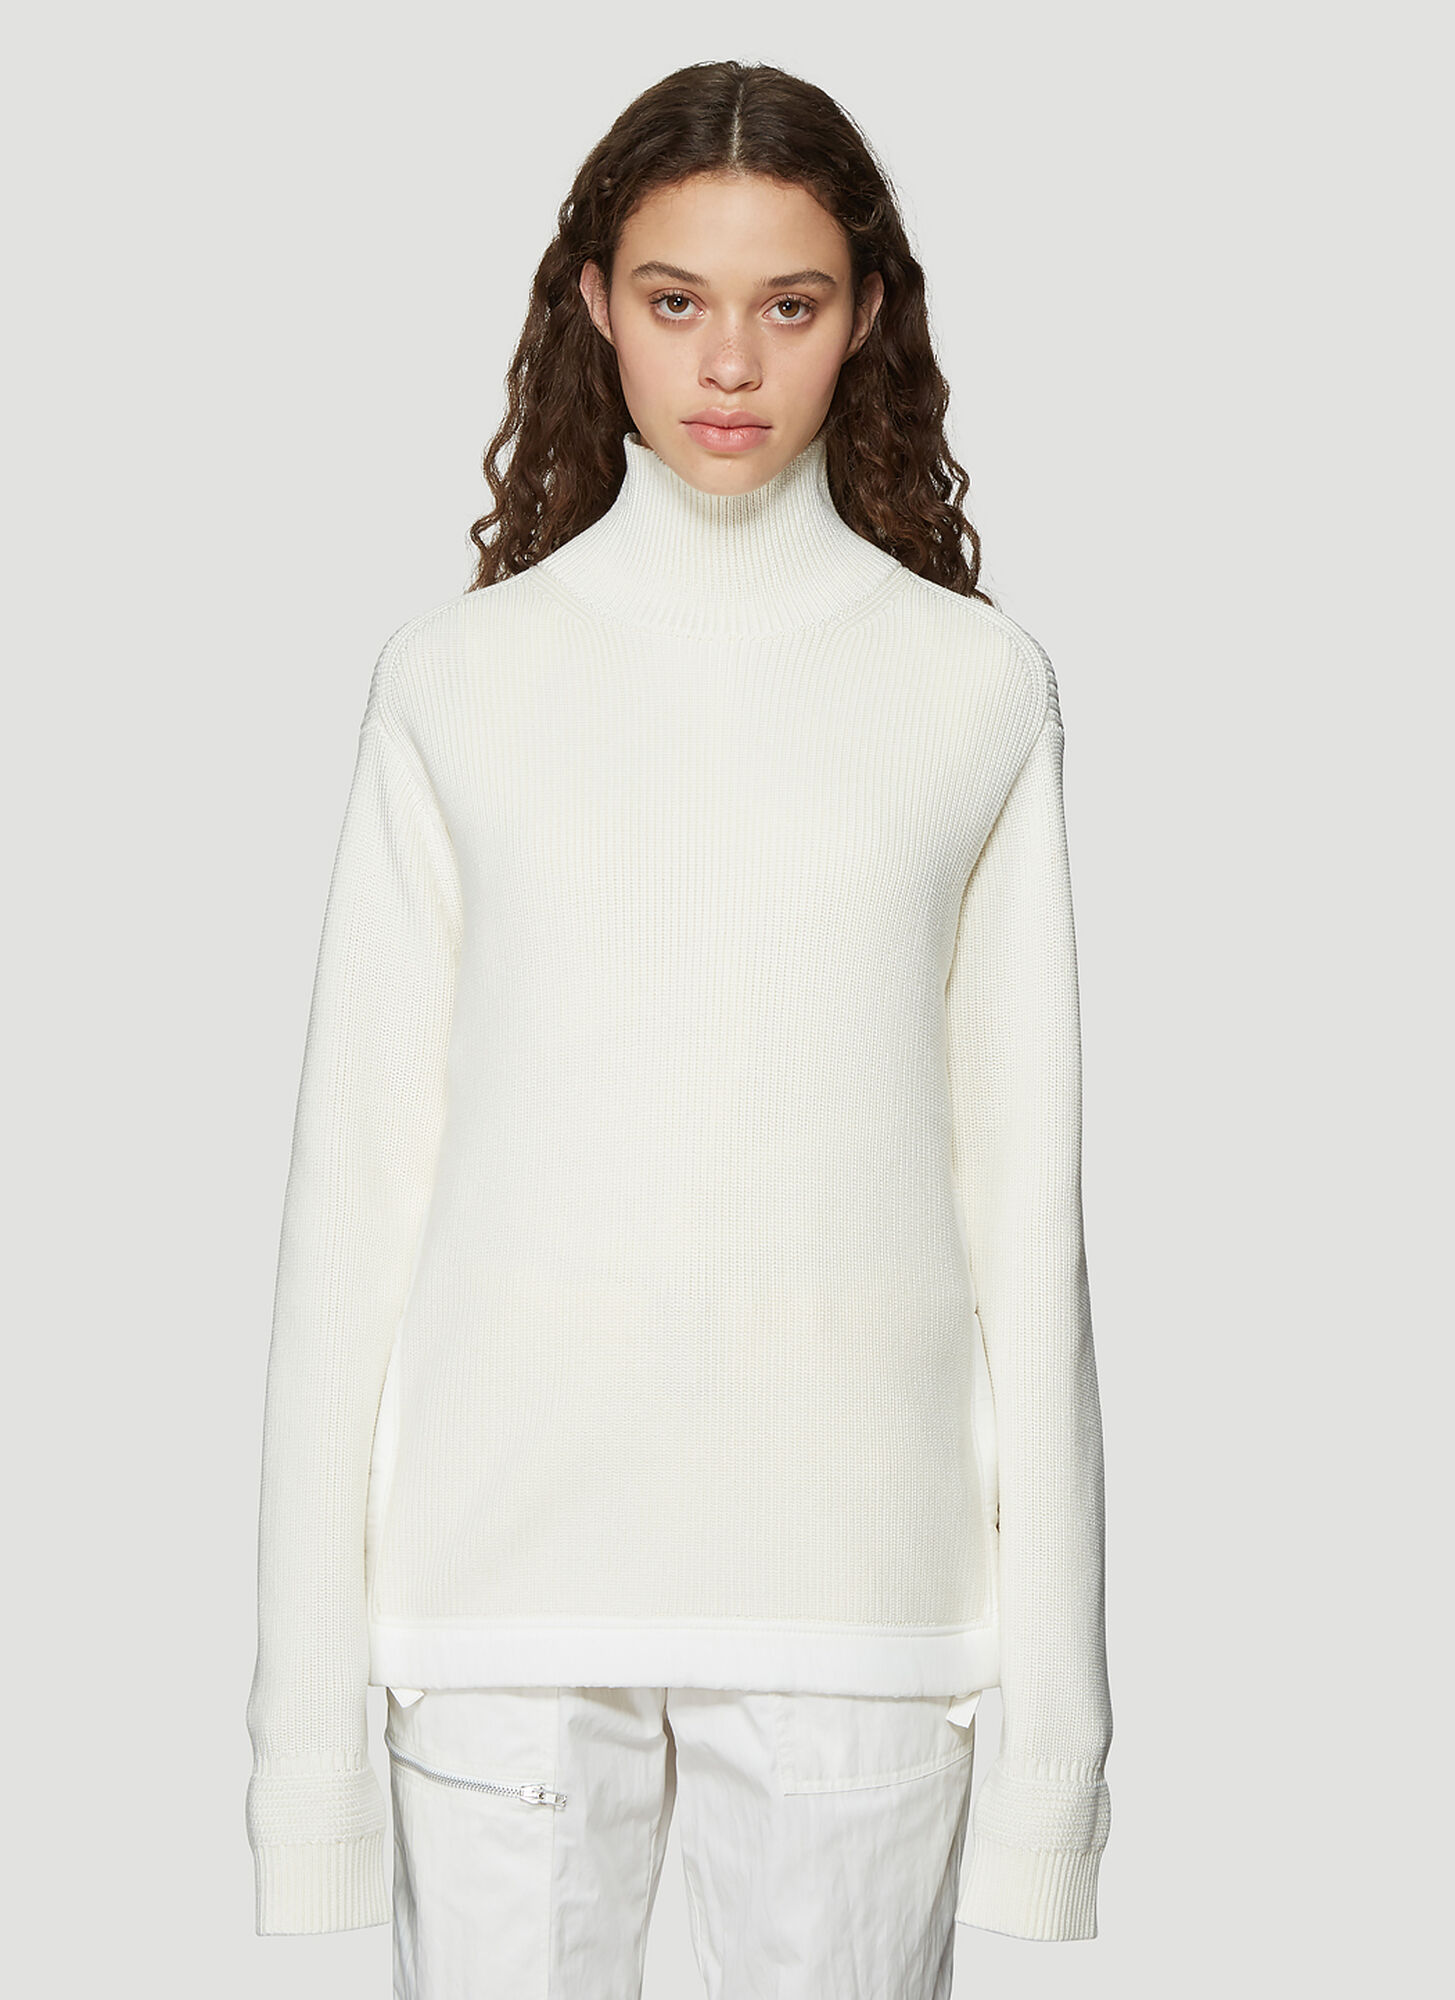 Helmut Lang Military Style Ribbed Knit Mock Neck Sweater in White